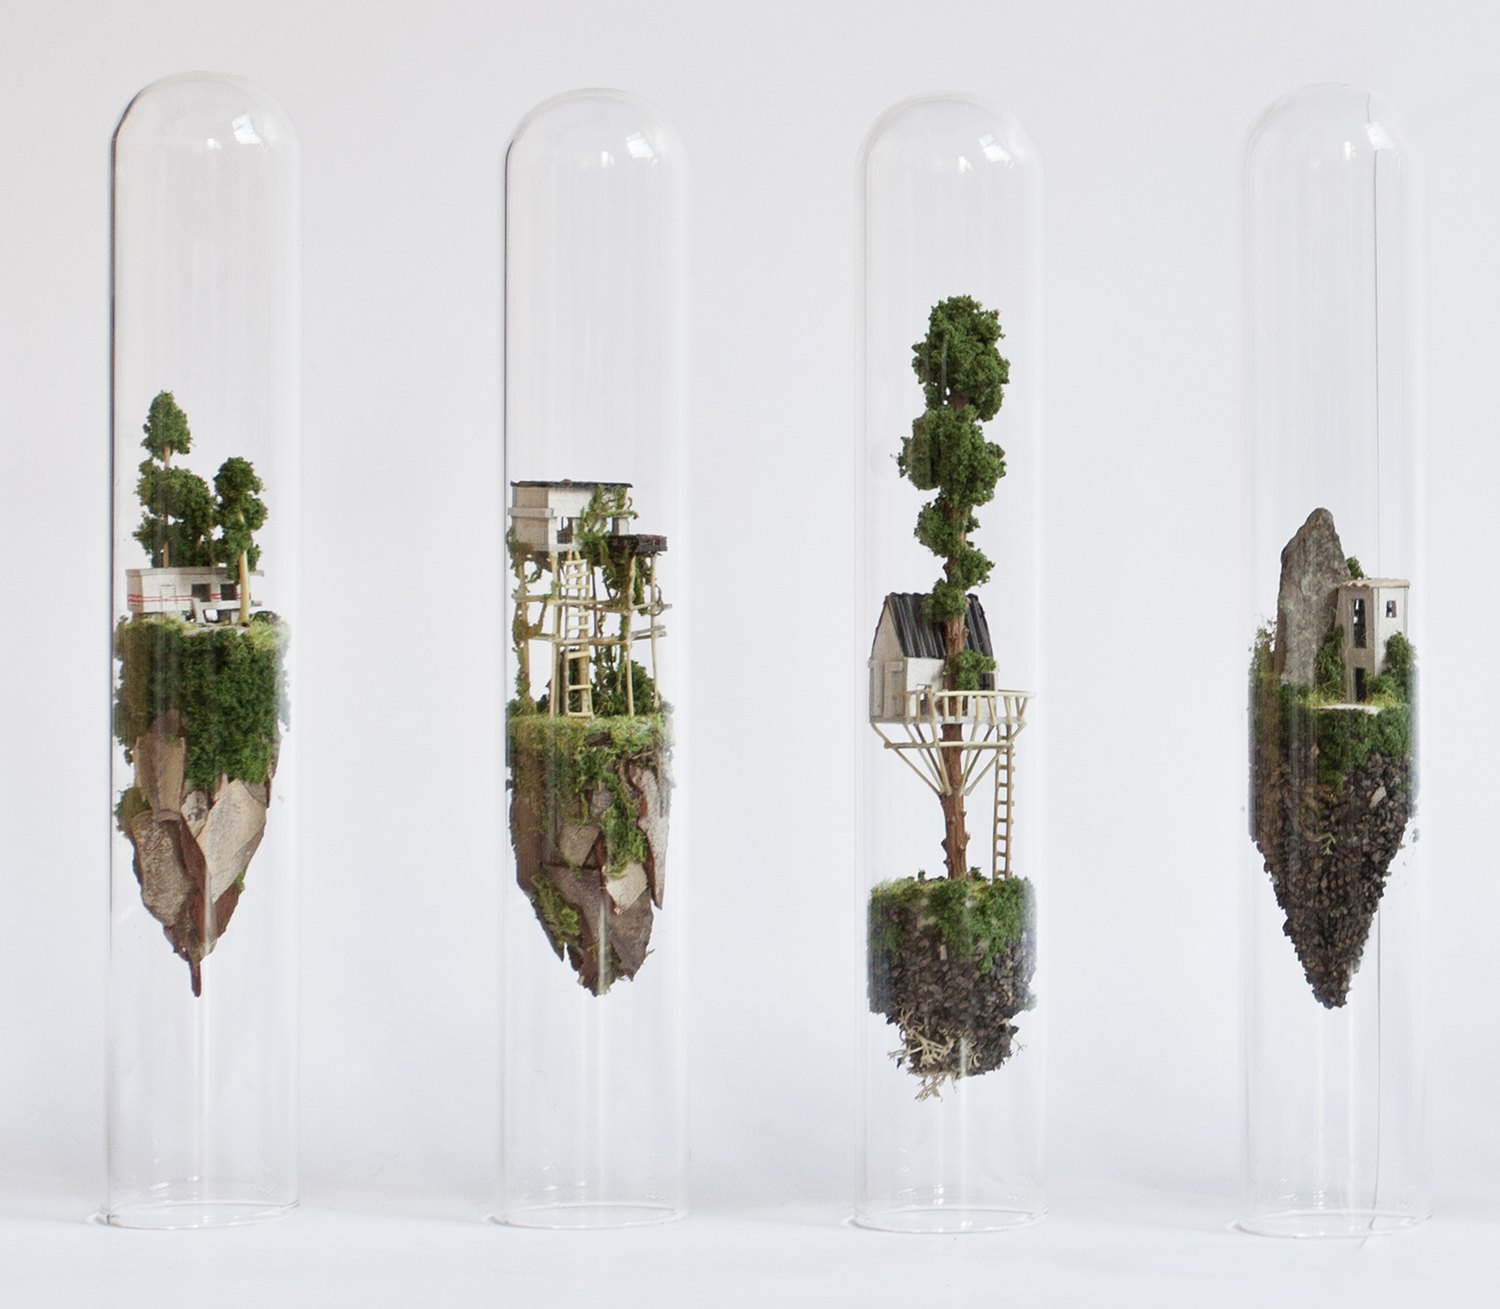 Miniature sculptures in glass tubes